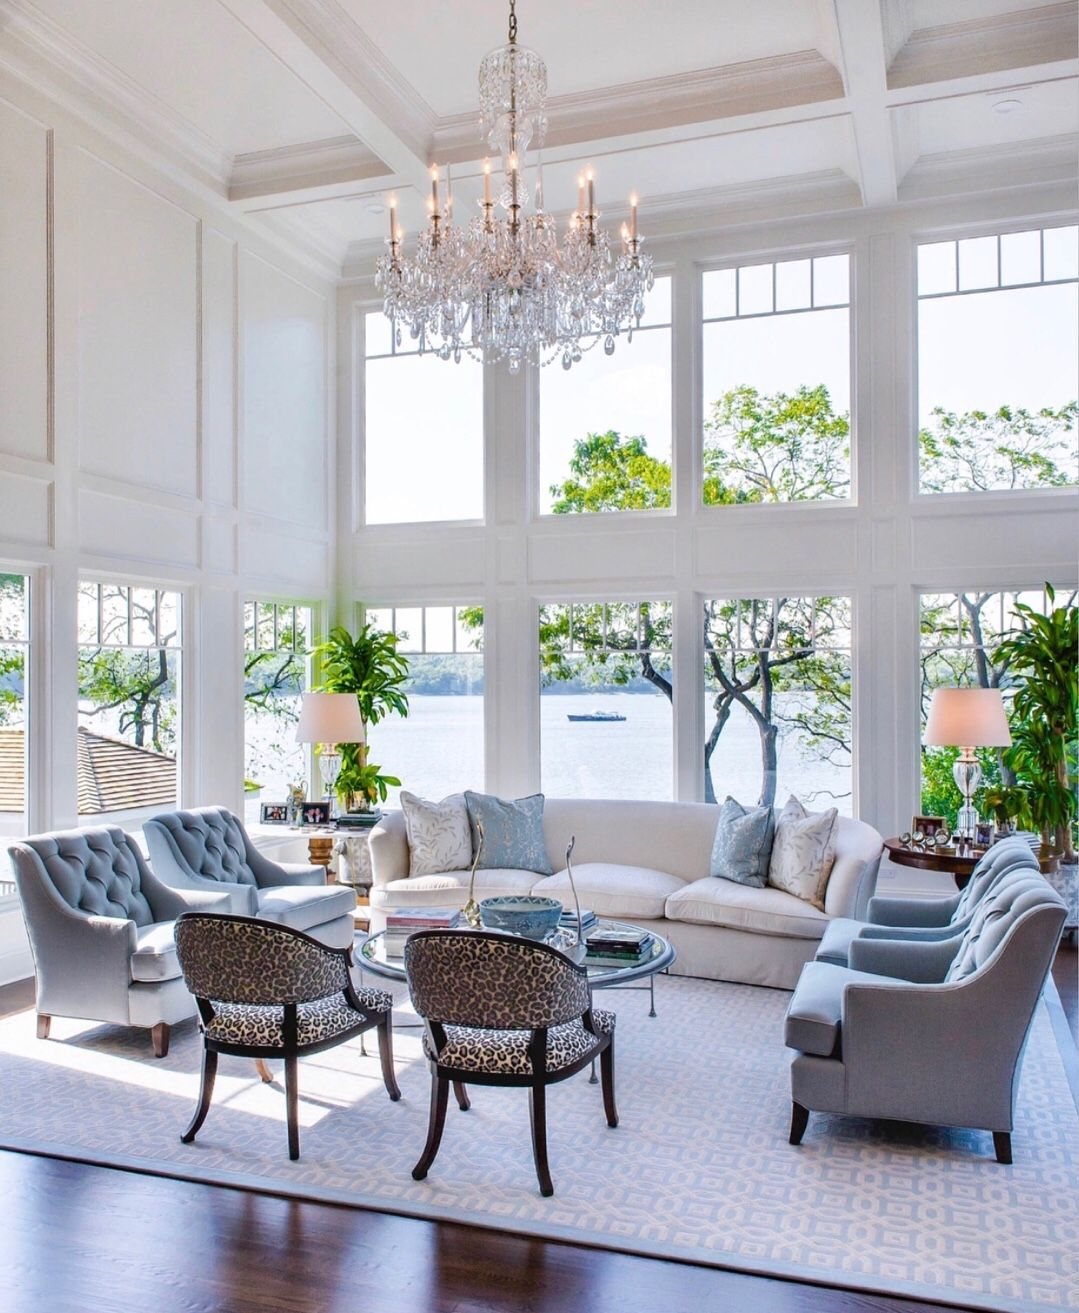 Pin By Debbie Evans On Deco Ideas In 2019: Pin By Debbie Kimbrell On Coastal Living... In 2019